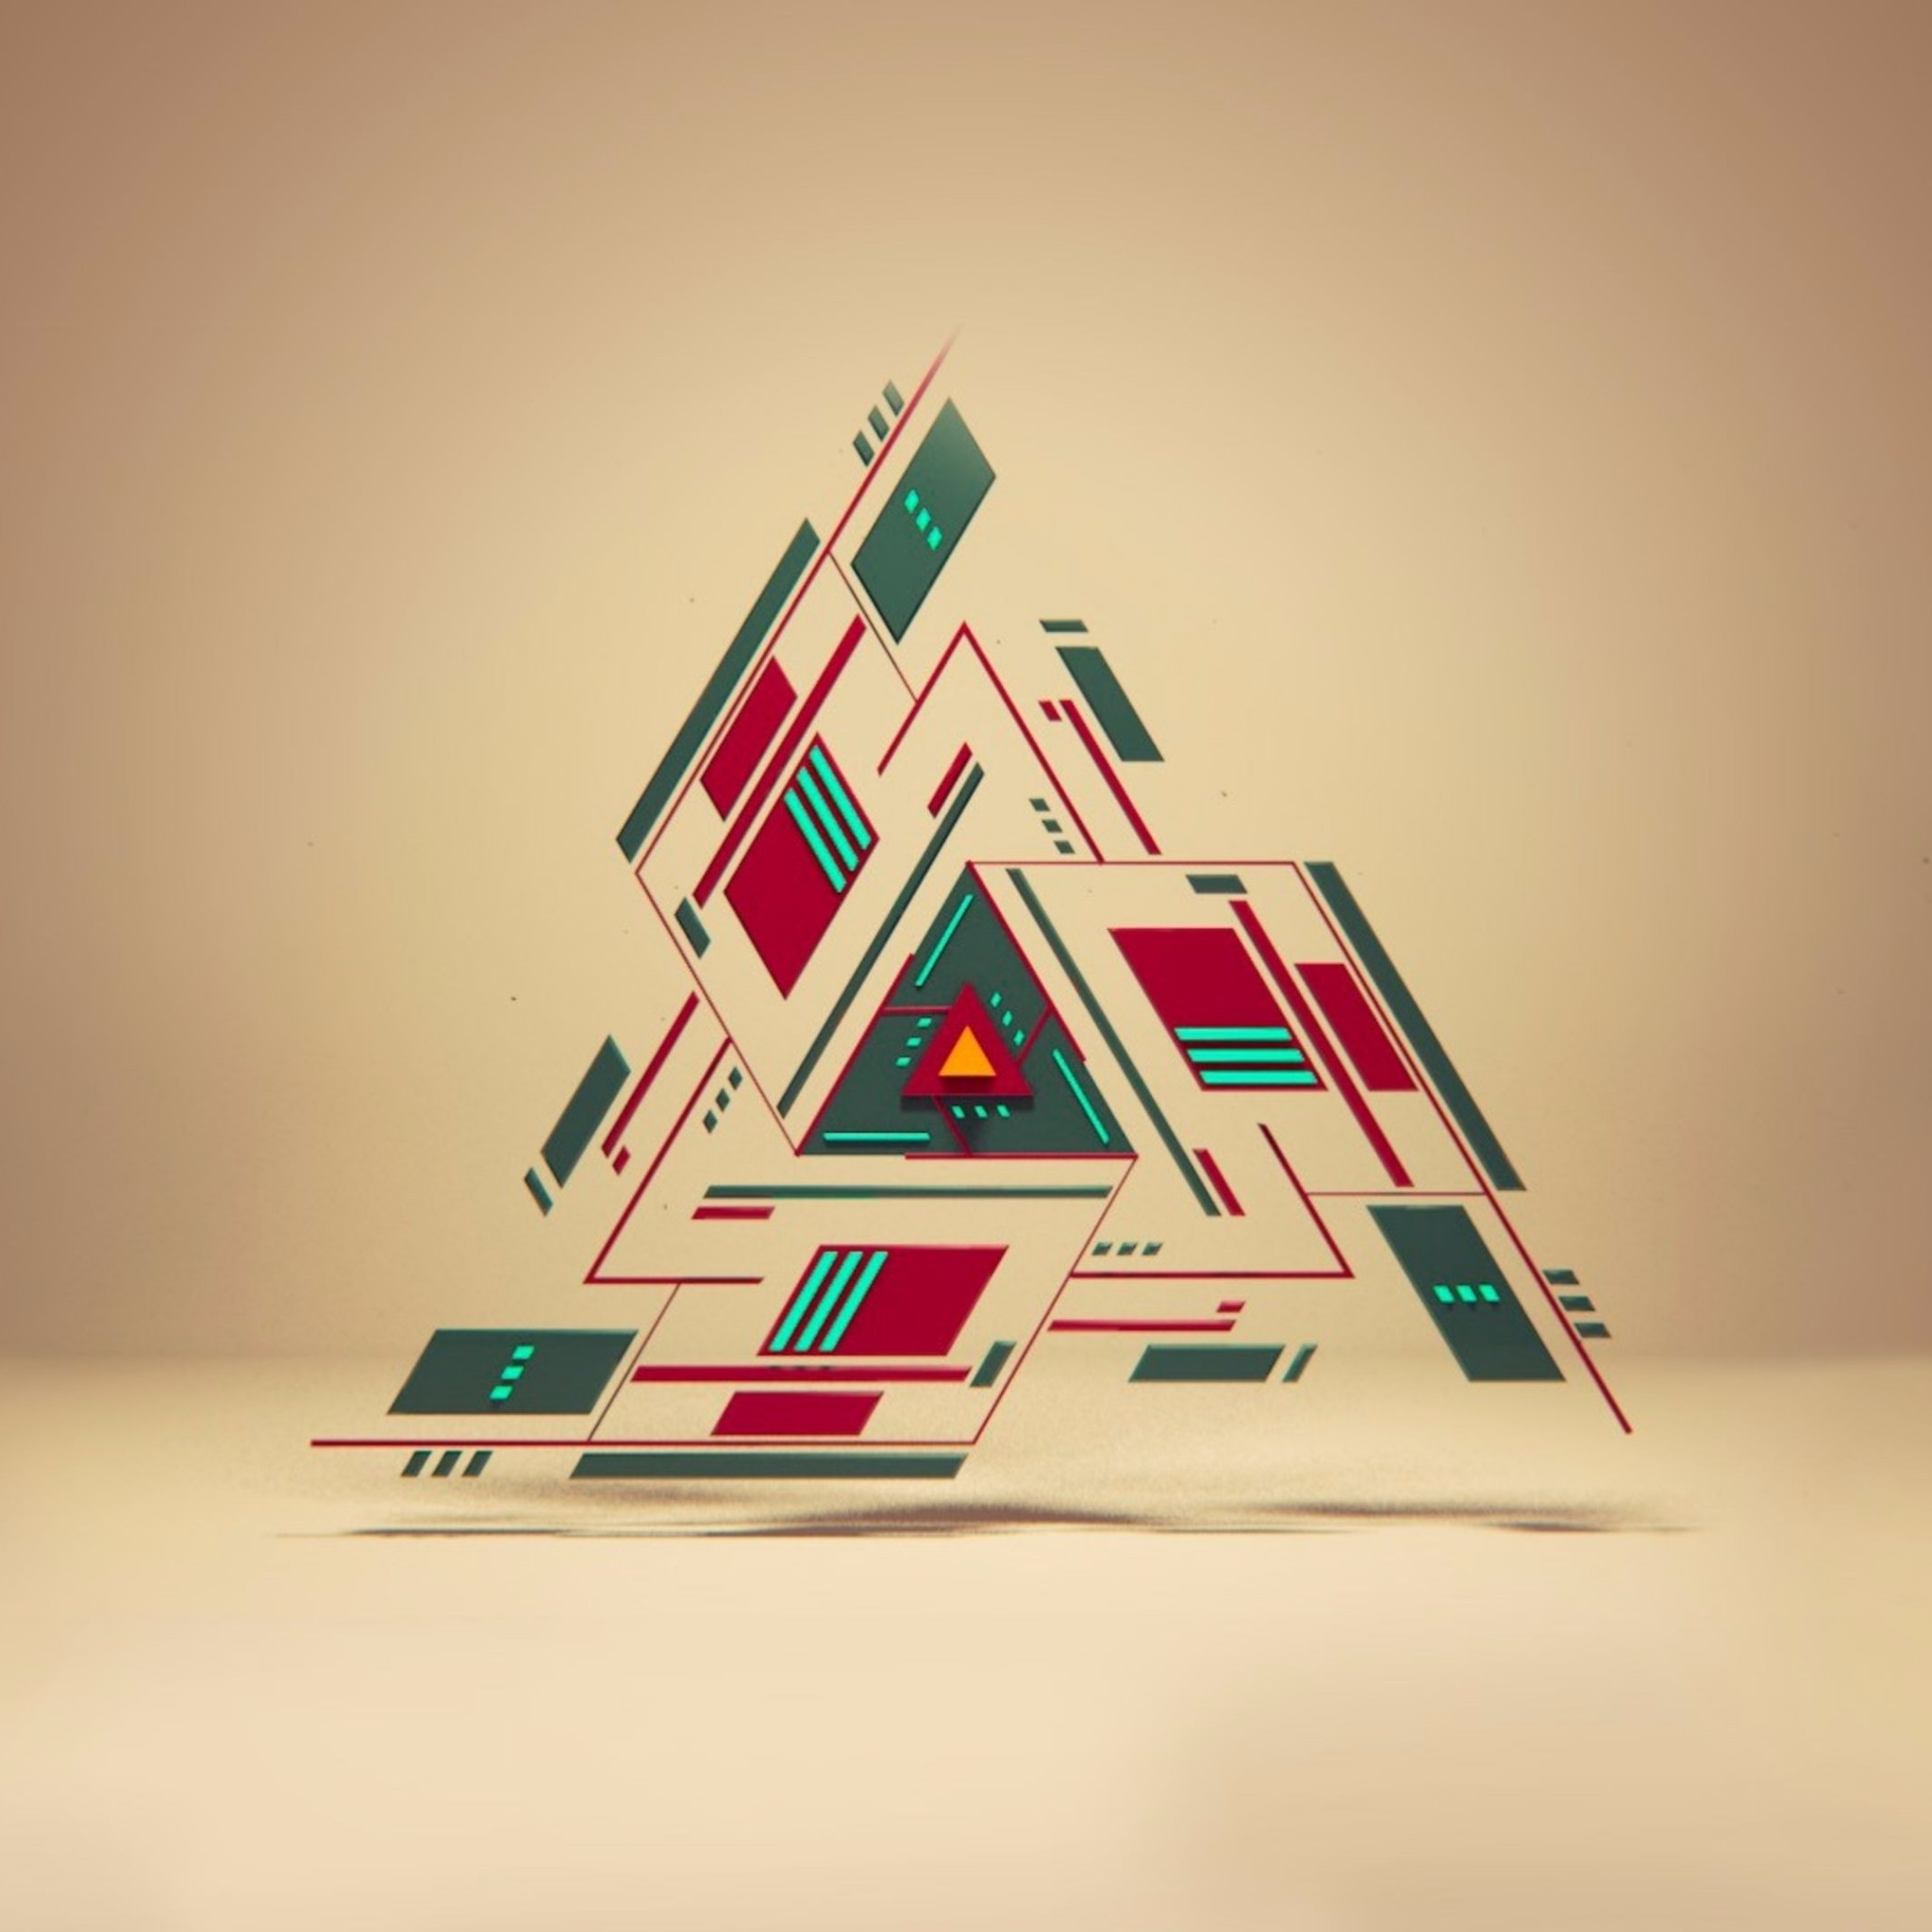 Abstract Triangle Art Wallpaper